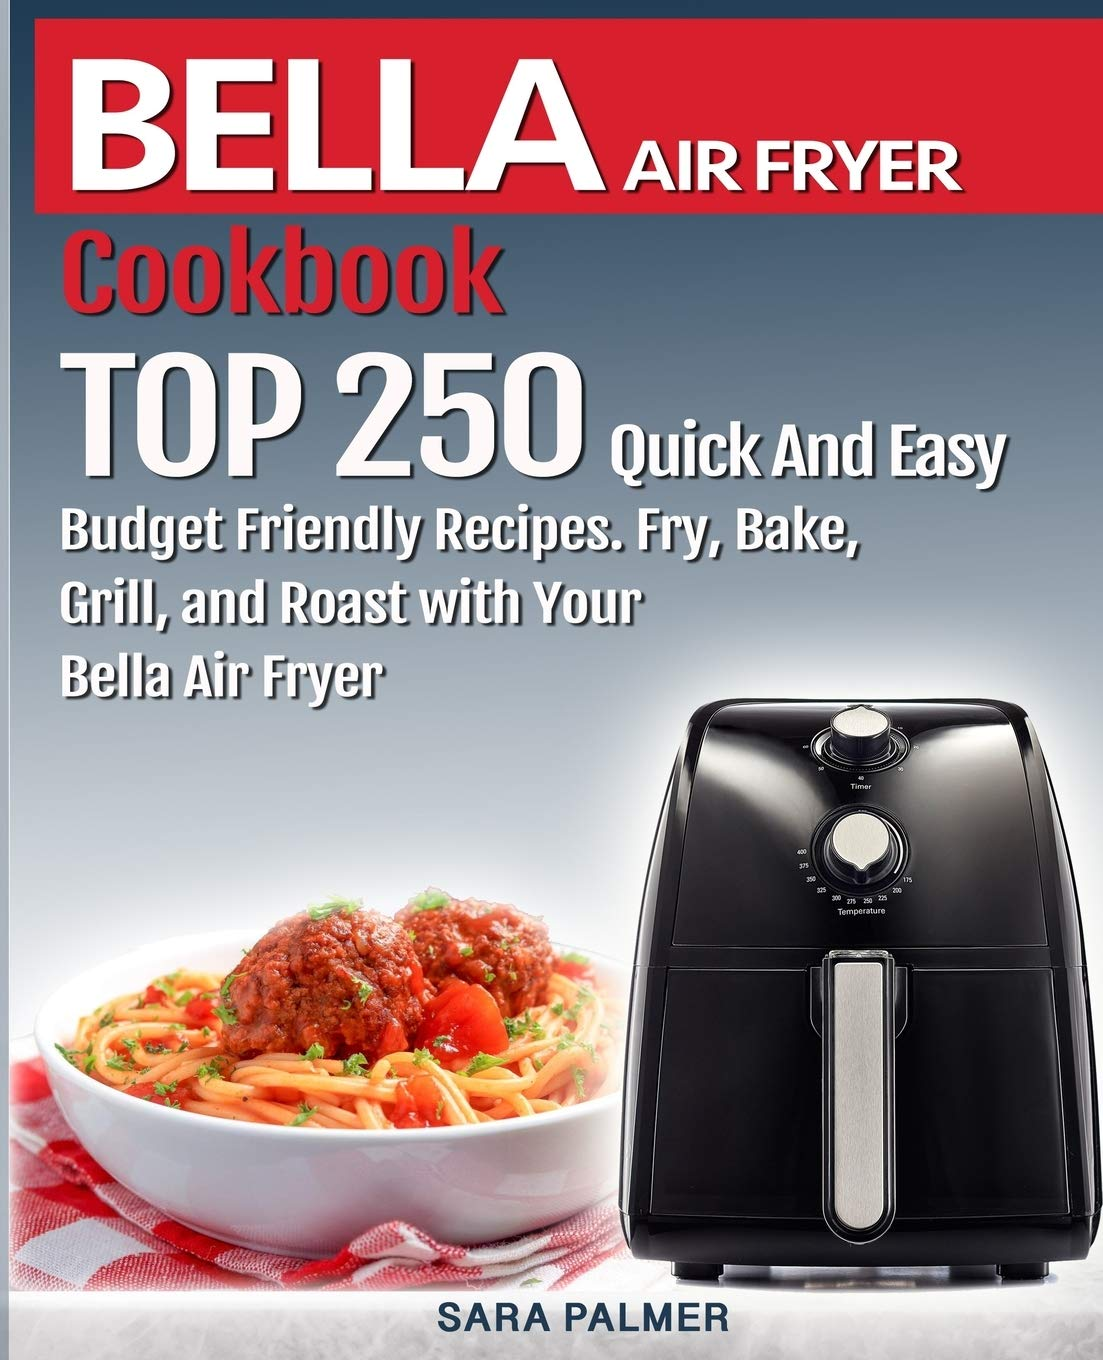 BELLA AIR FRYER Cookbook: TOP 10 Quick And Easy Budget Friendly